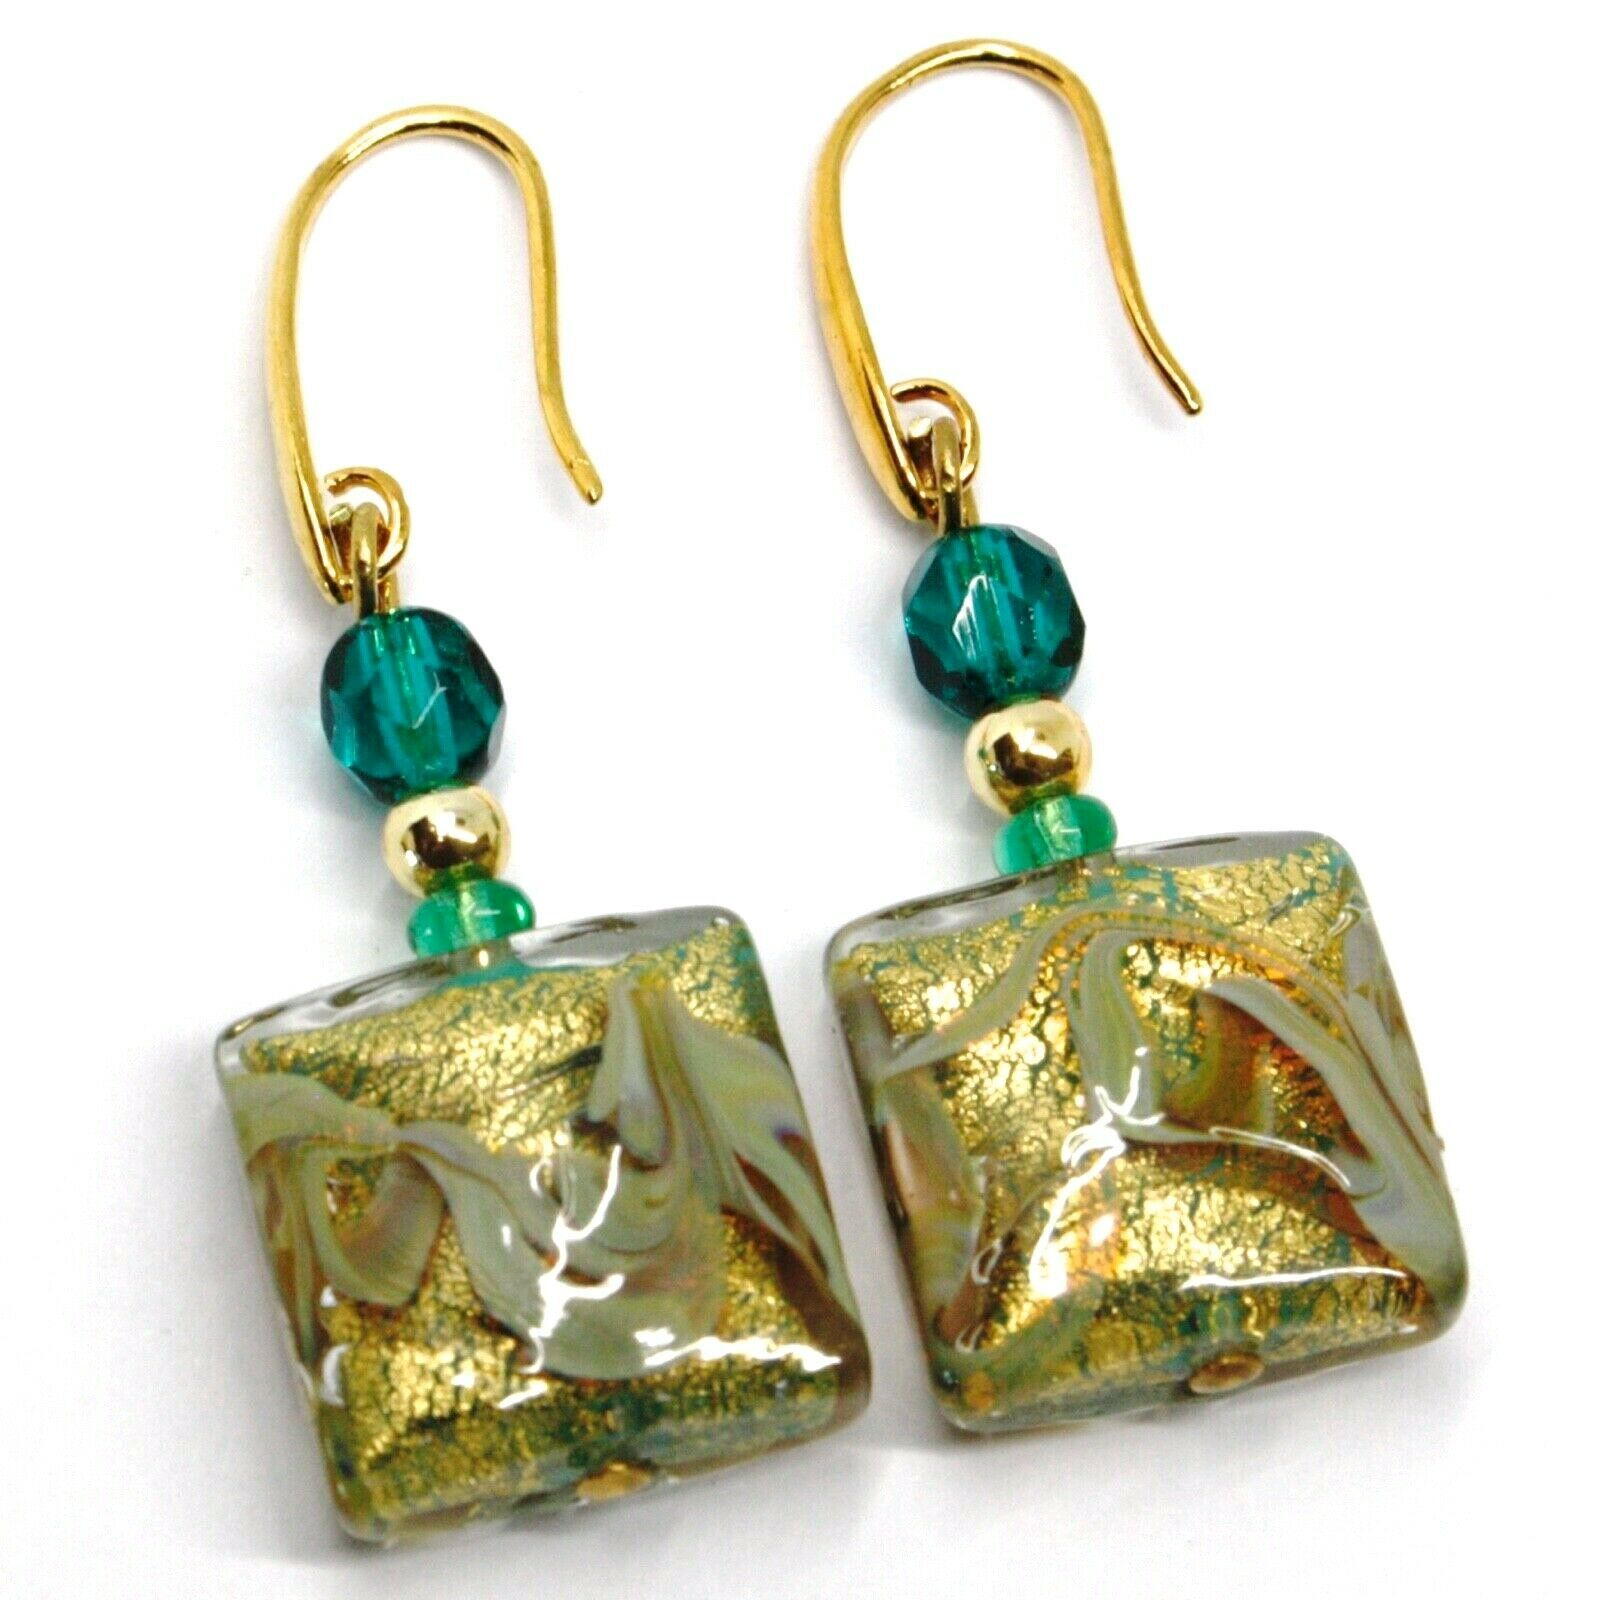 PENDANT EARRINGS WITH GREEN MURANO SQUARE GLASS & GOLD LEAF, MADE IN ITALY, 5cm